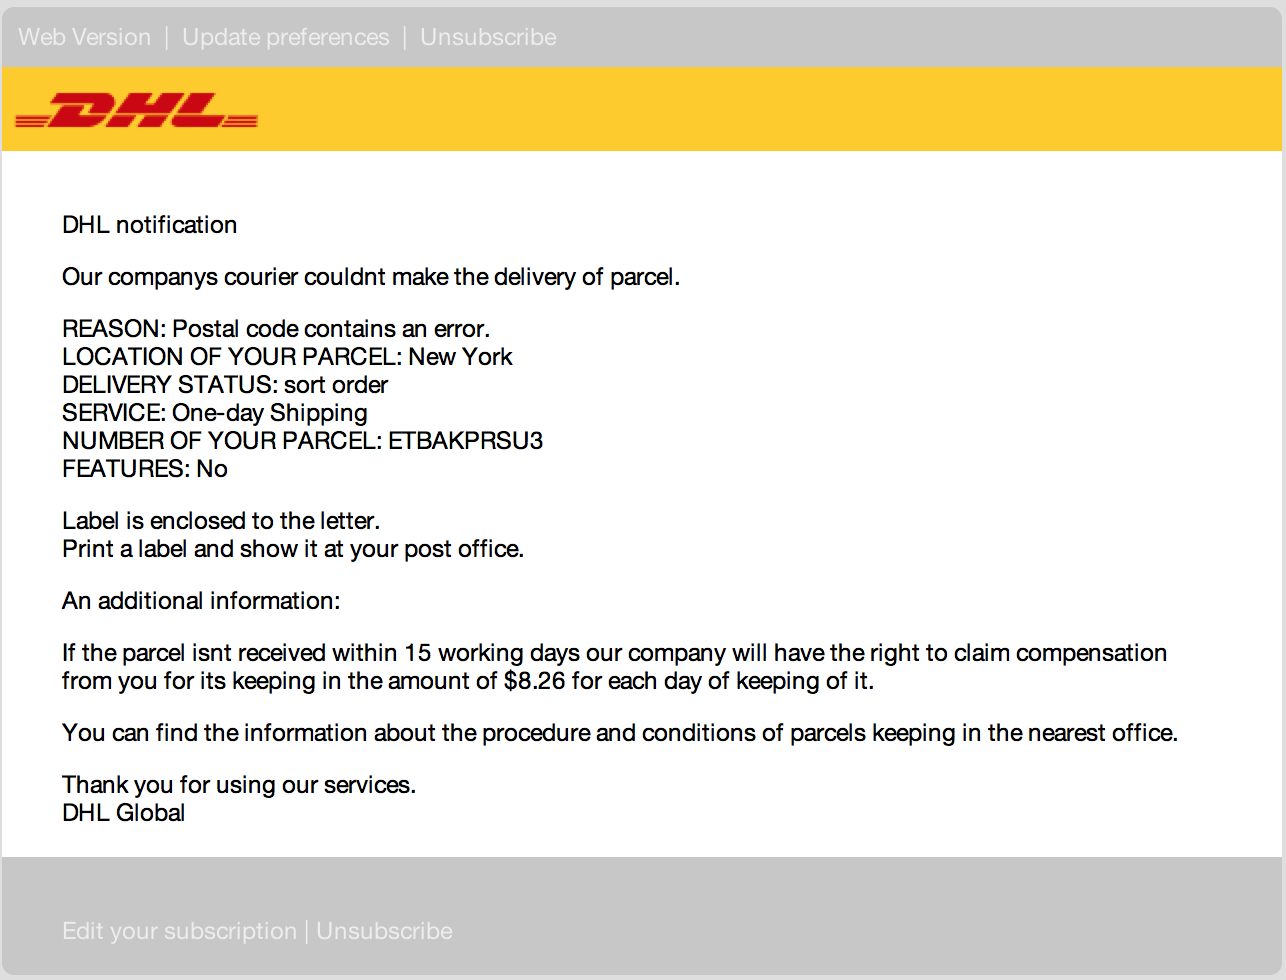 dhldelivery